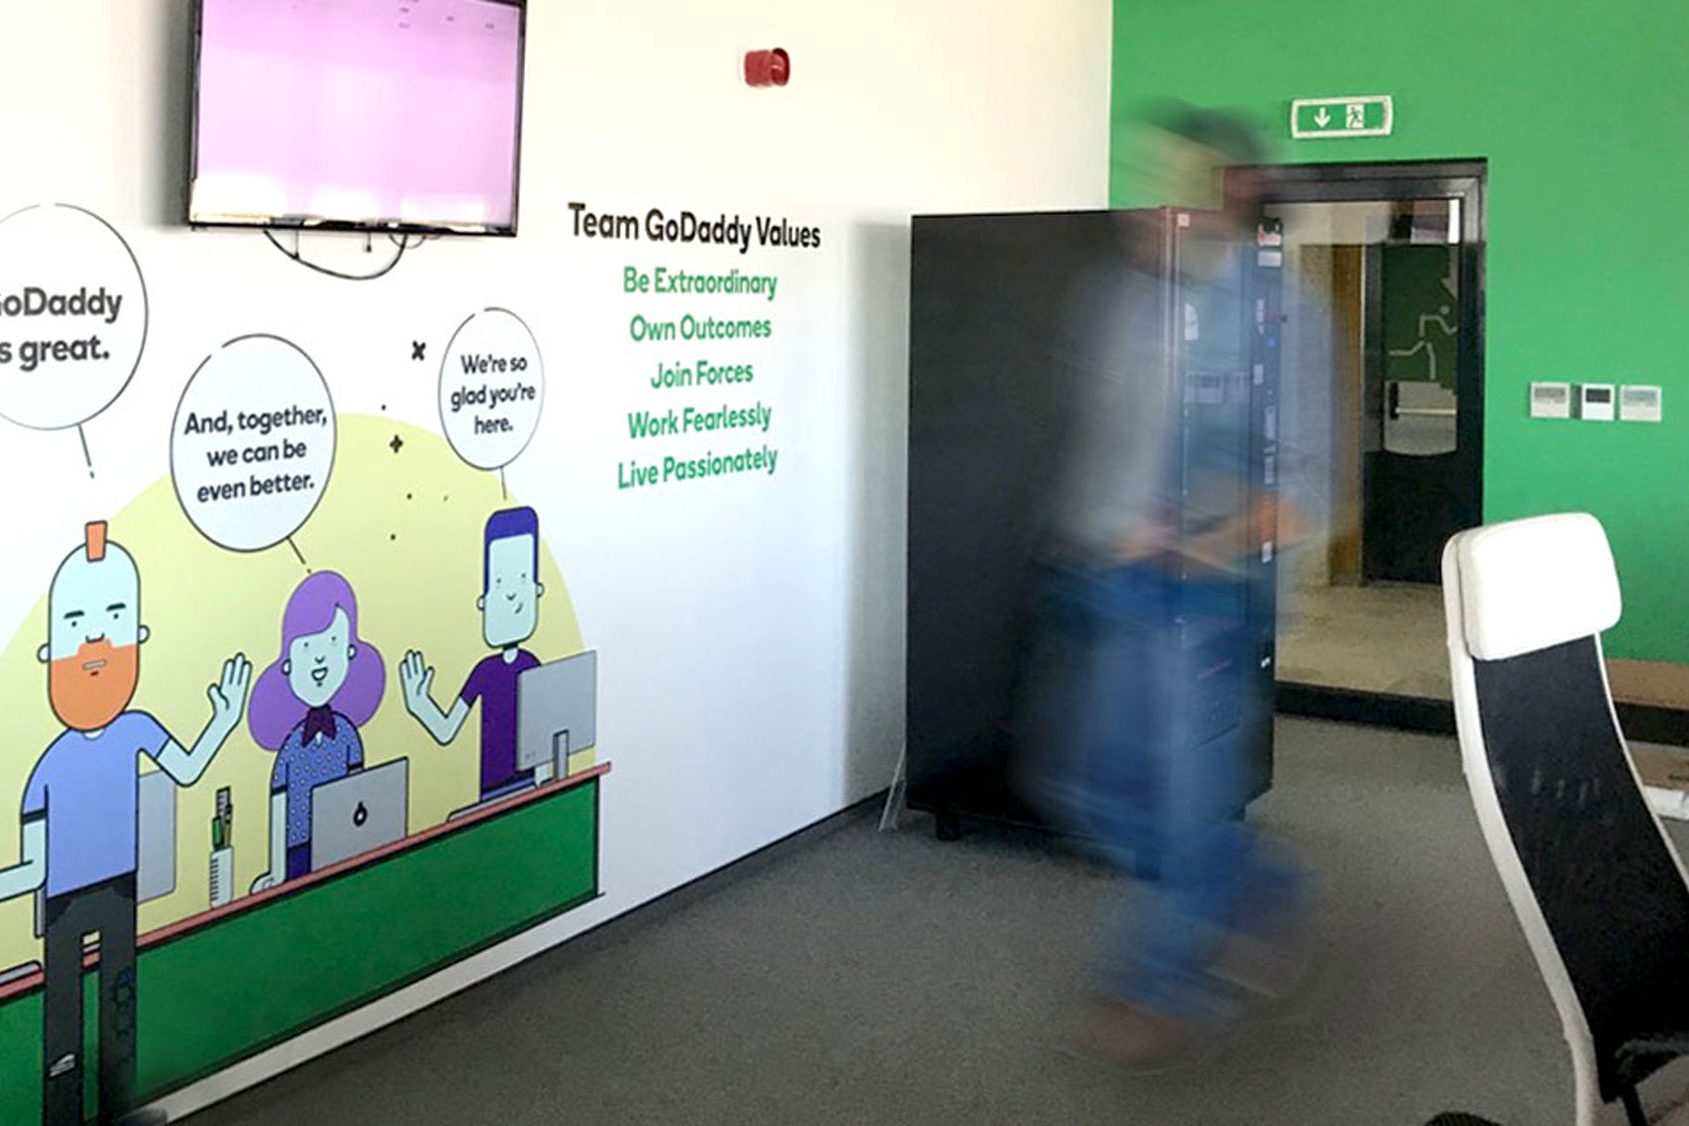 Decorated wall with motivational text and fun illustration